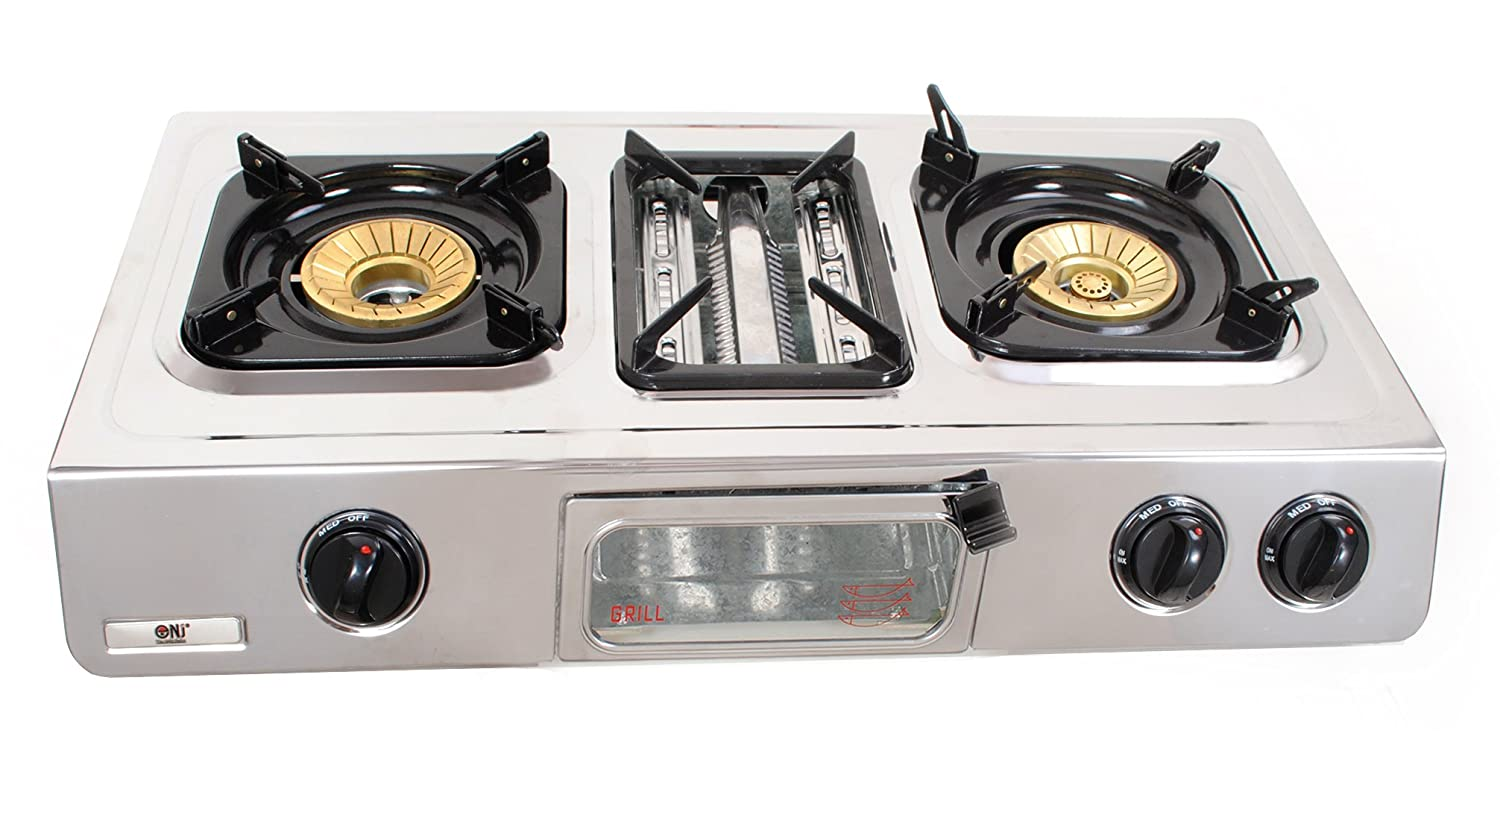 NJ GC-87 Gas Stove 2 Burner with Grill and Oven Stainless Steel 70cm ...